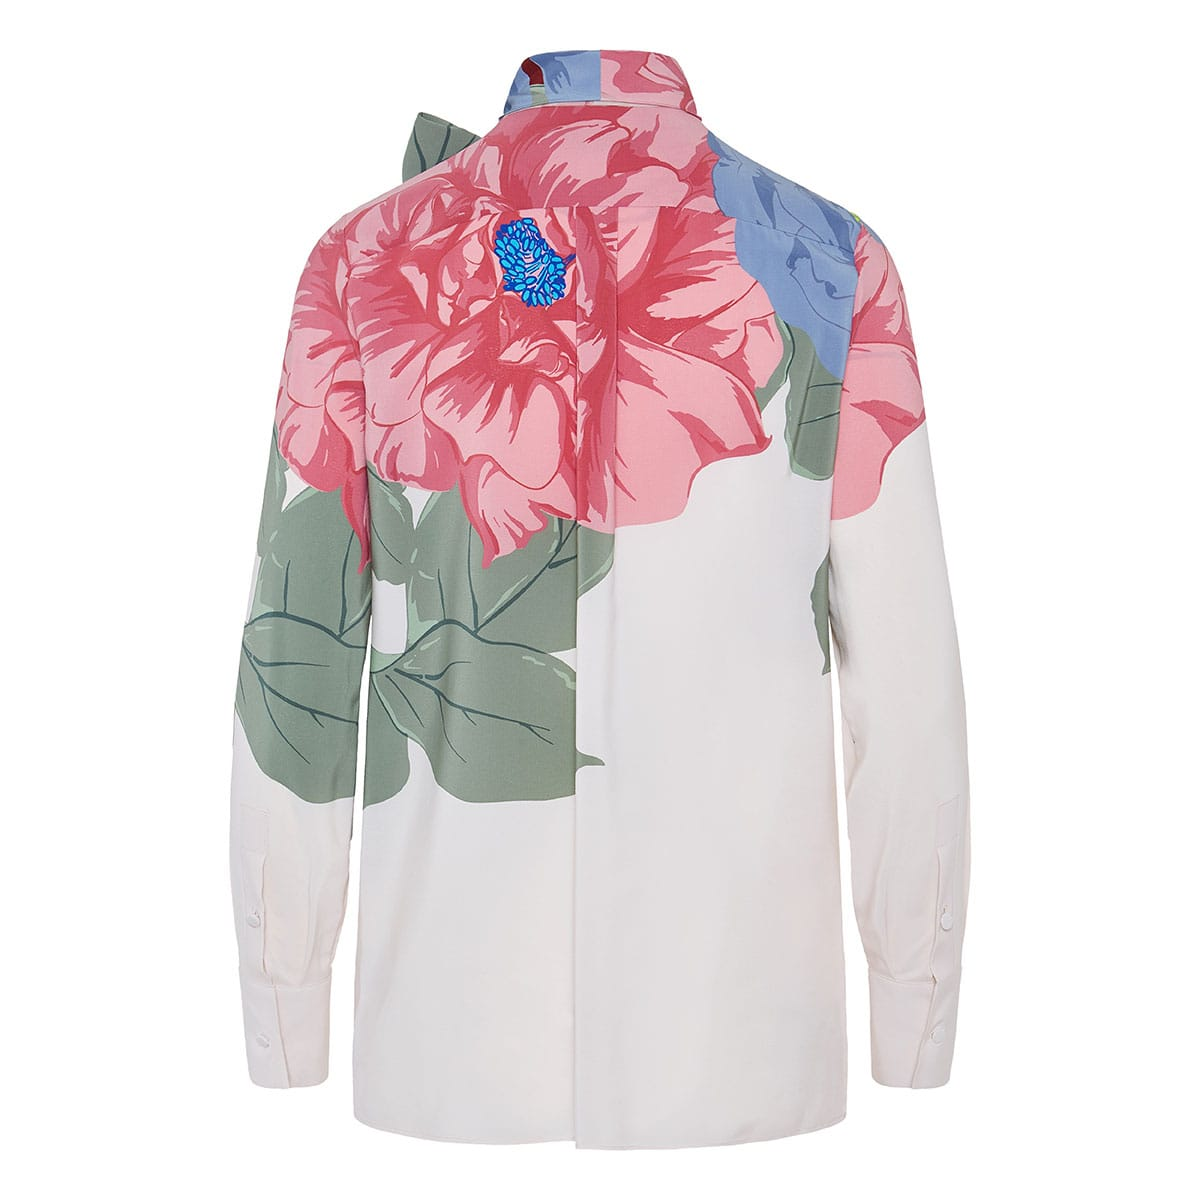 Bow-tie floral crepe shirt